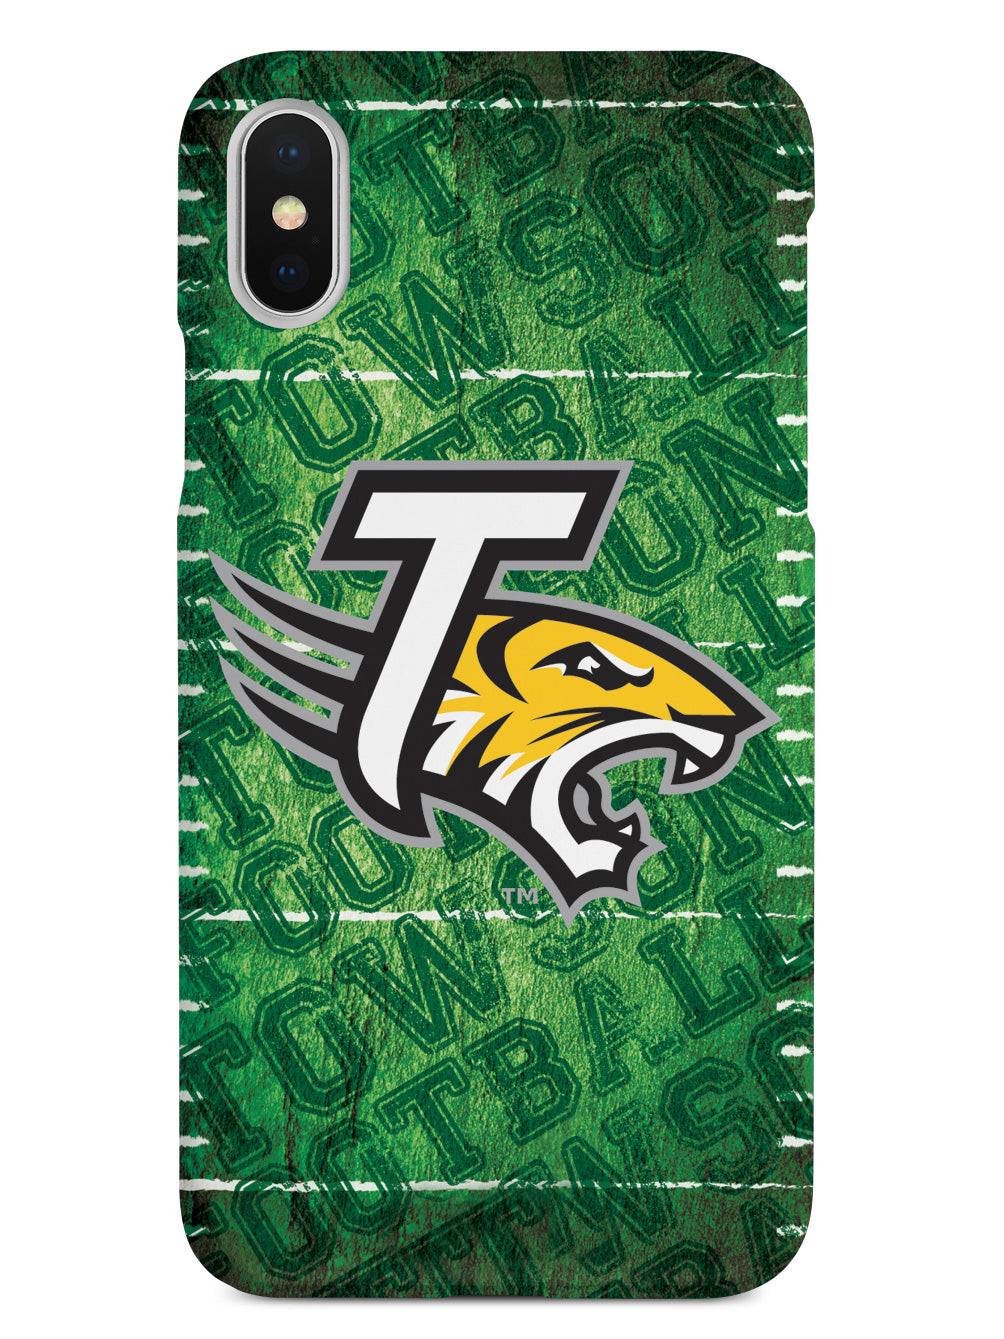 Towson University Tigers - Football Case